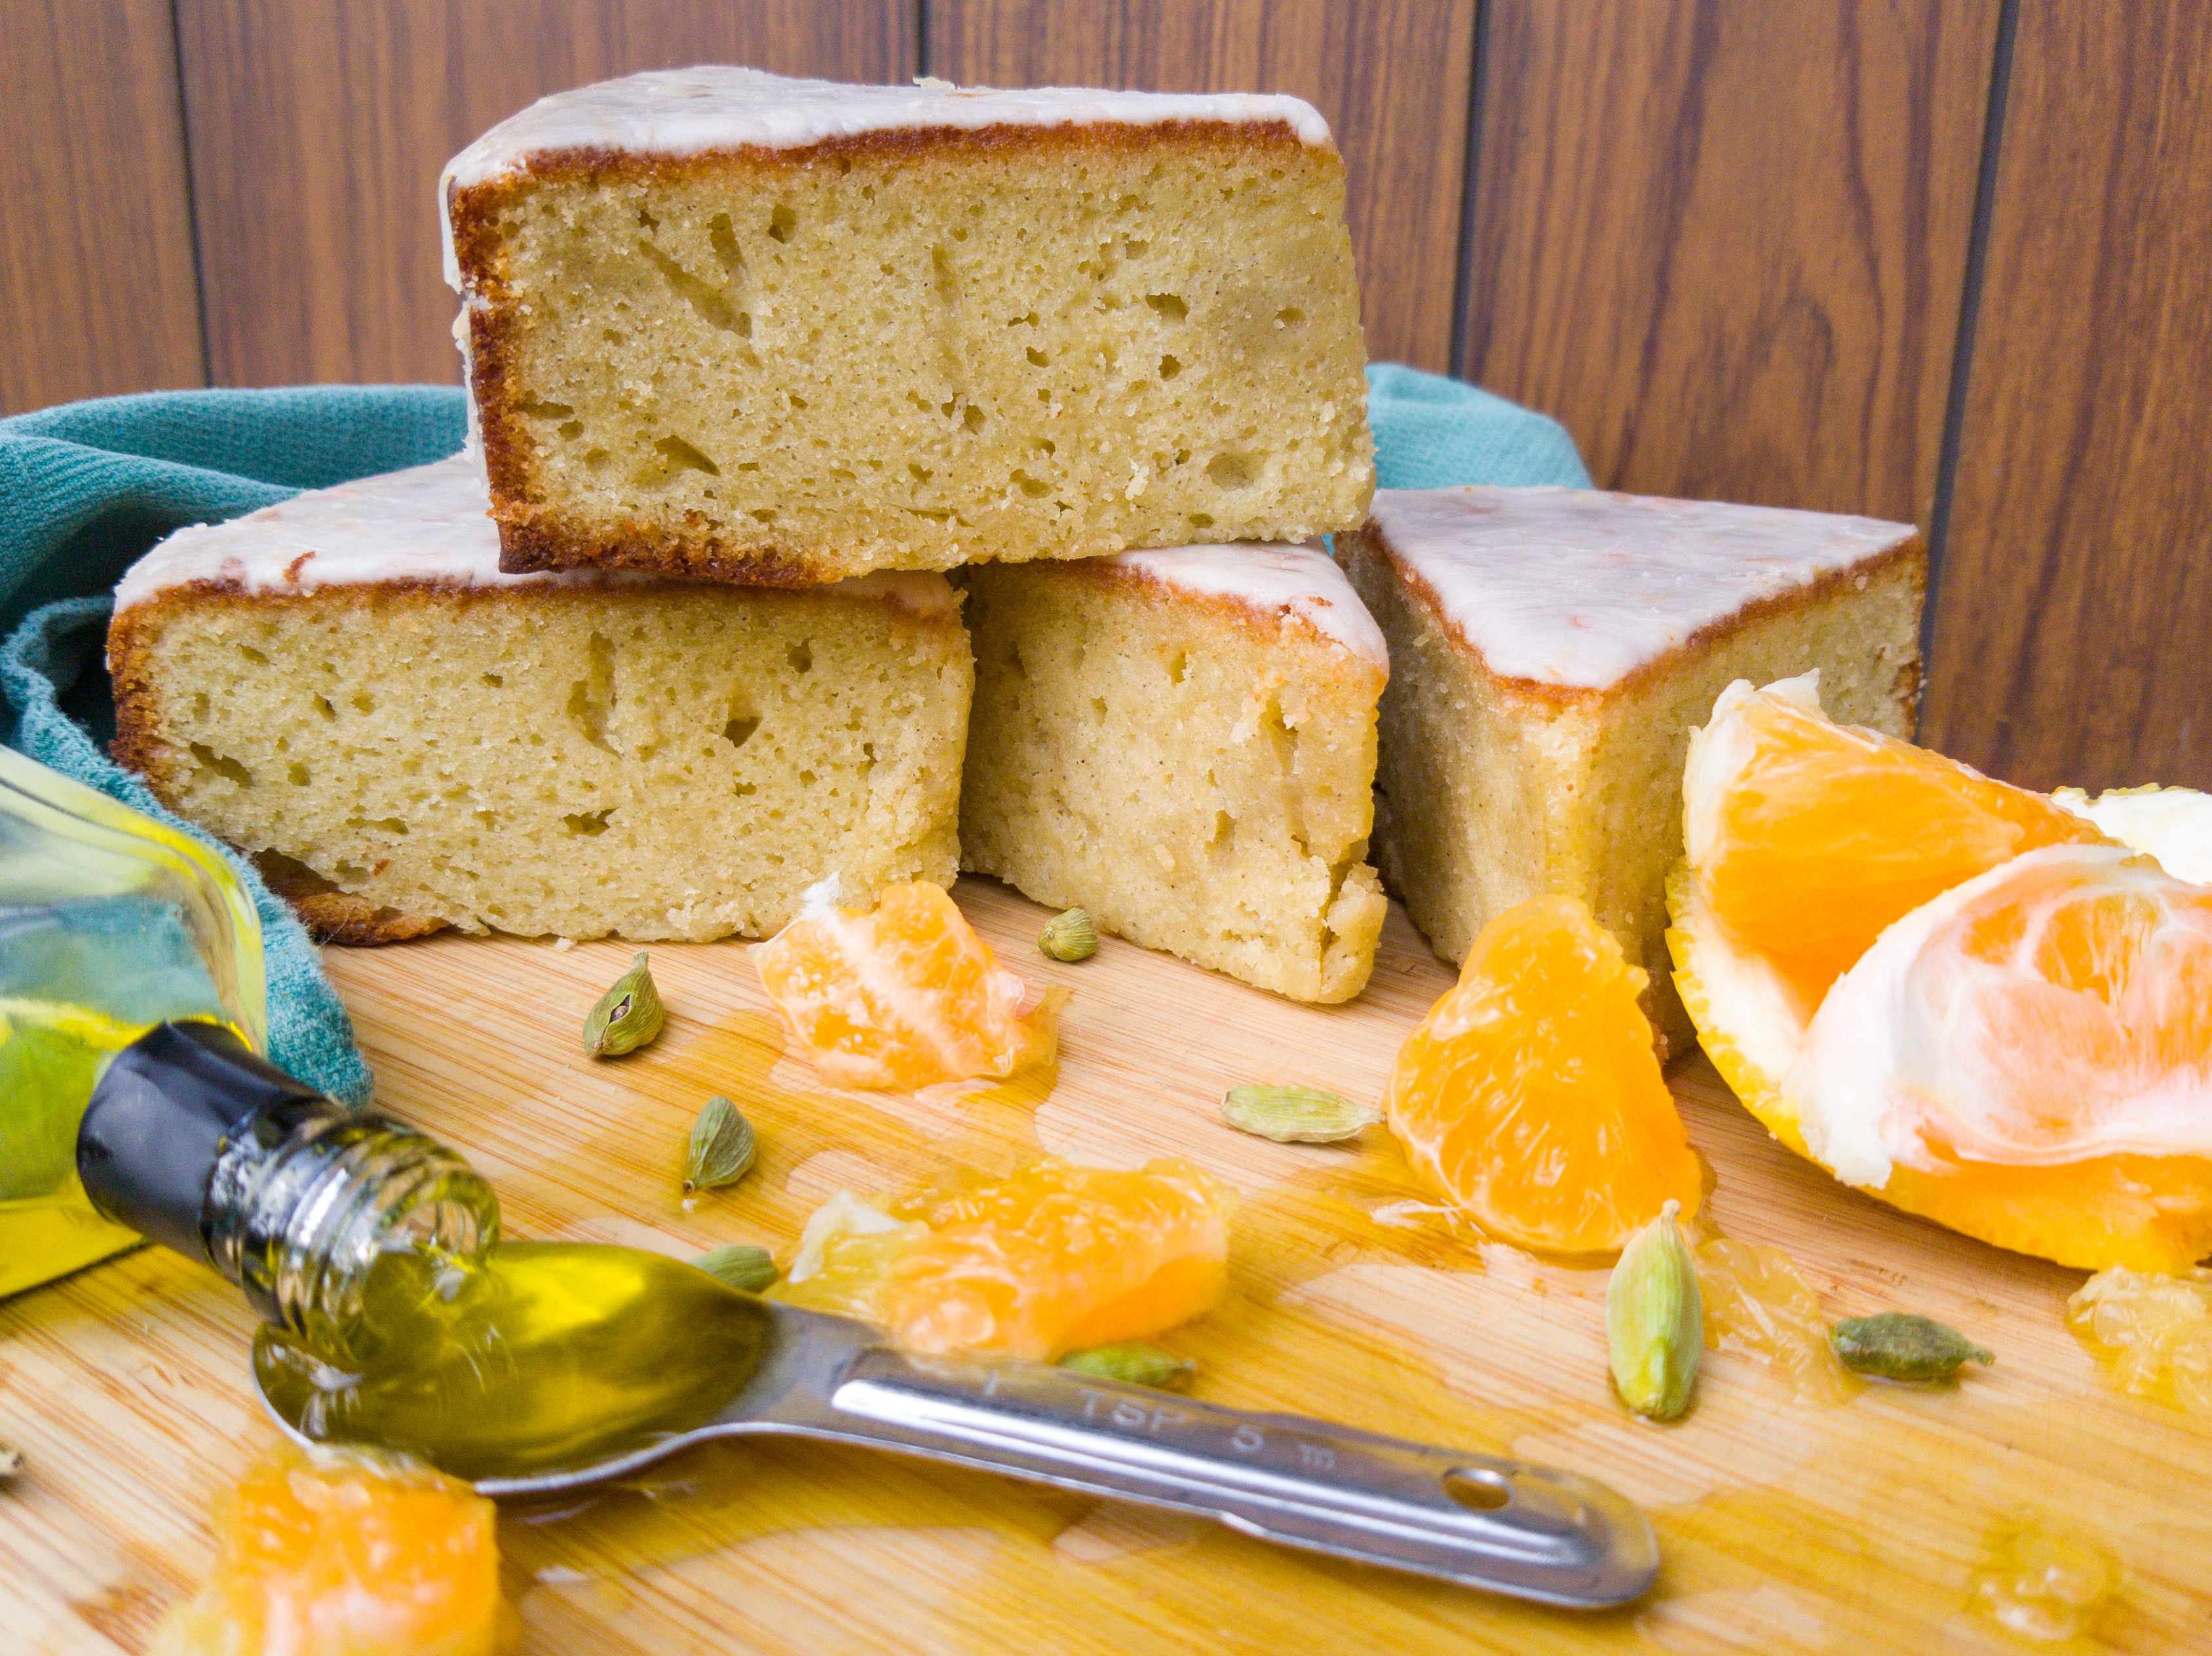 Grapefruit Olive Oil Snack Cake with Cardamom